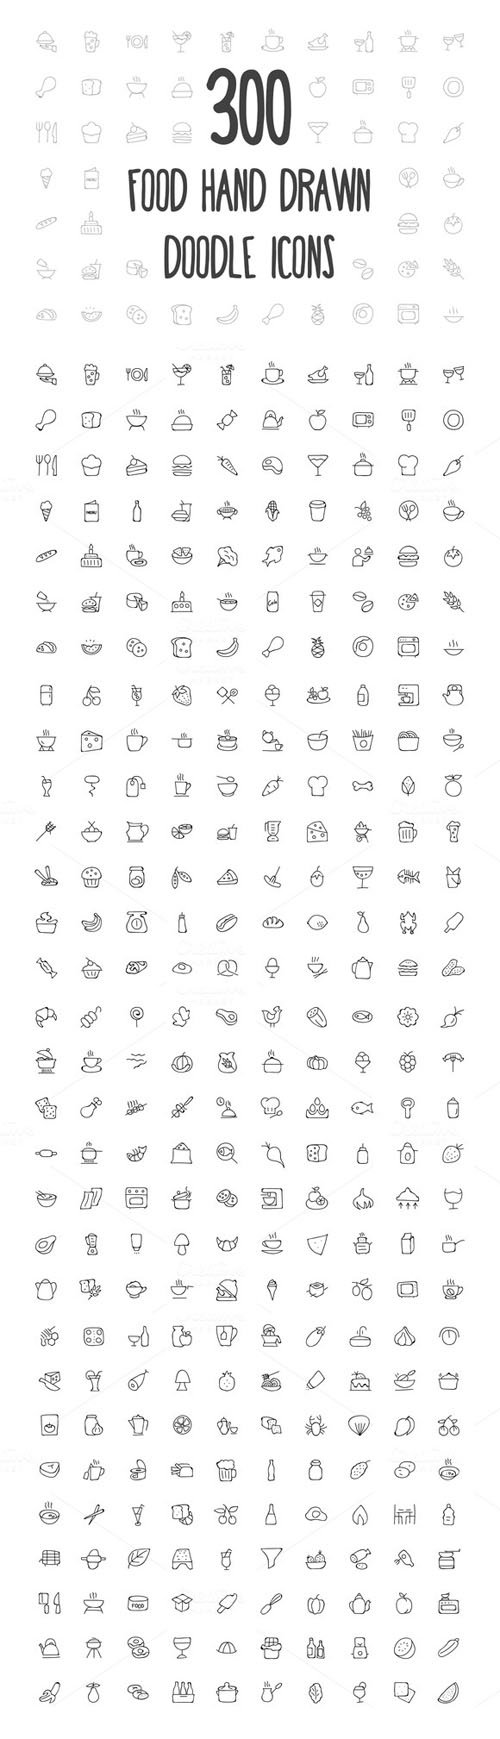 300 Food Hand Drawn Doodle Icons - Creativemarket 155353